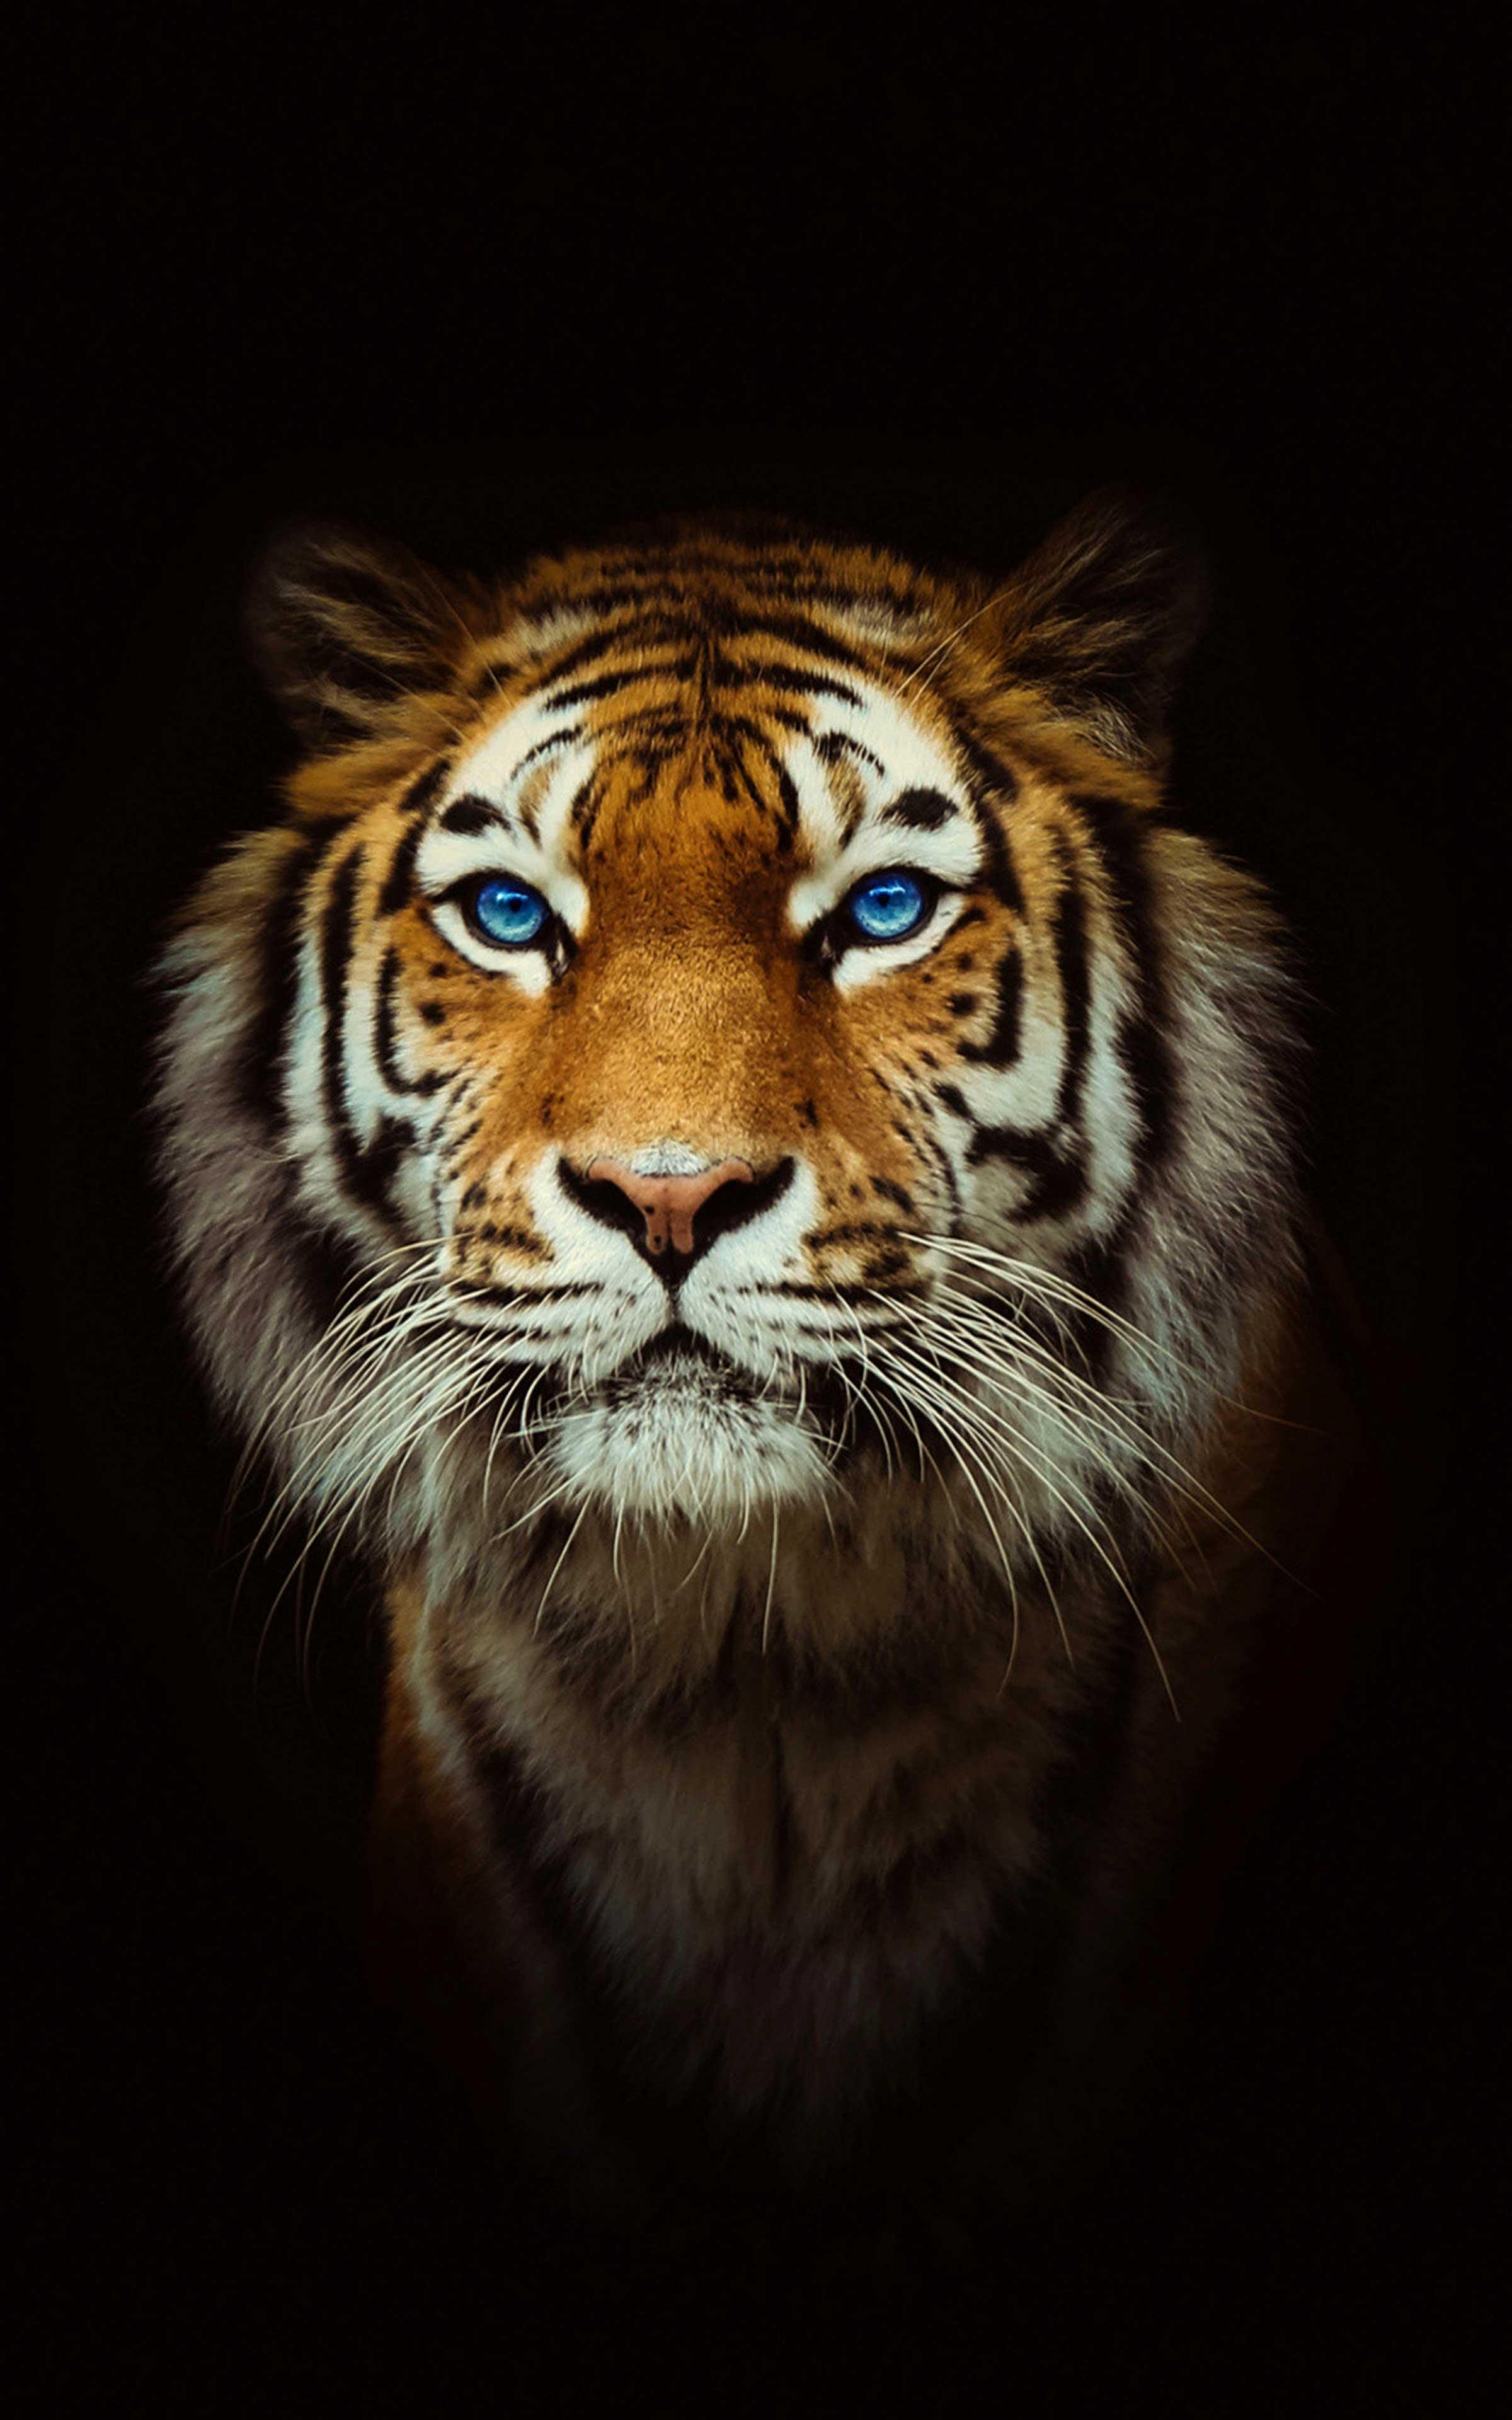 Tiger Wallpaper 4k Best Cool Tiger Wallpapers For Android